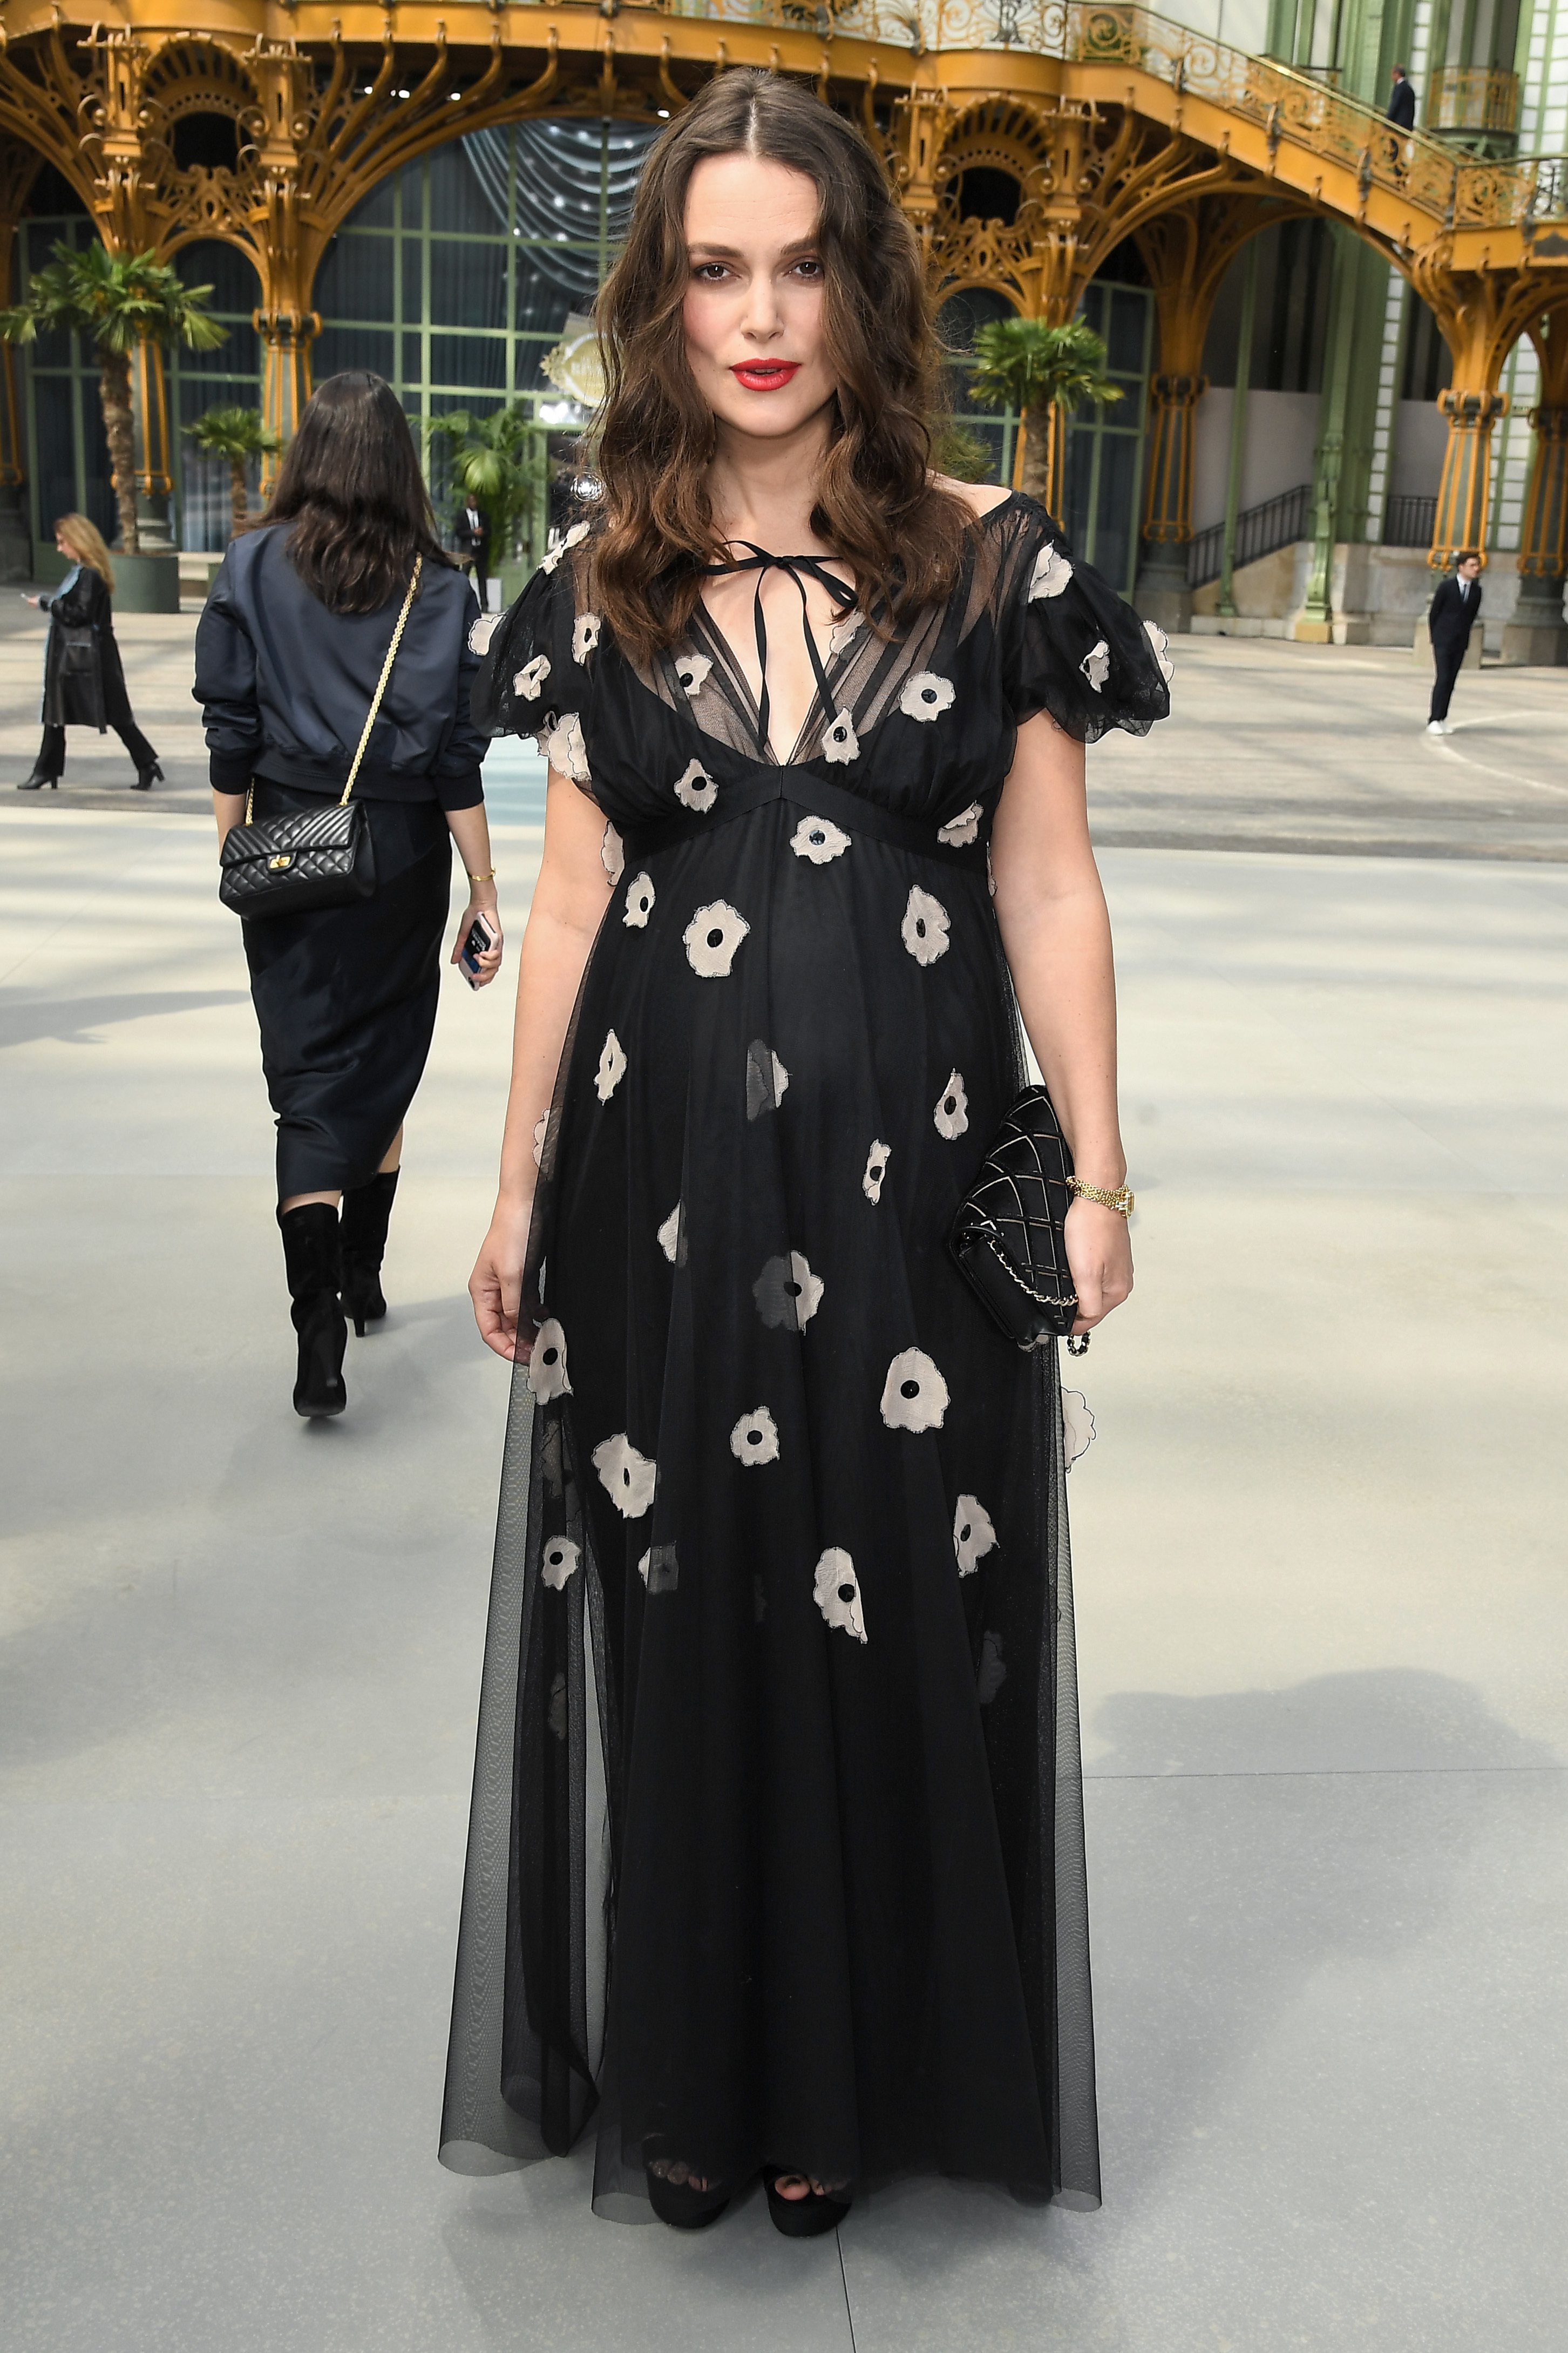 Keira Knightley appears in the front row of the Chanel Cruise 2020 show in Paris on May 3, 2019.